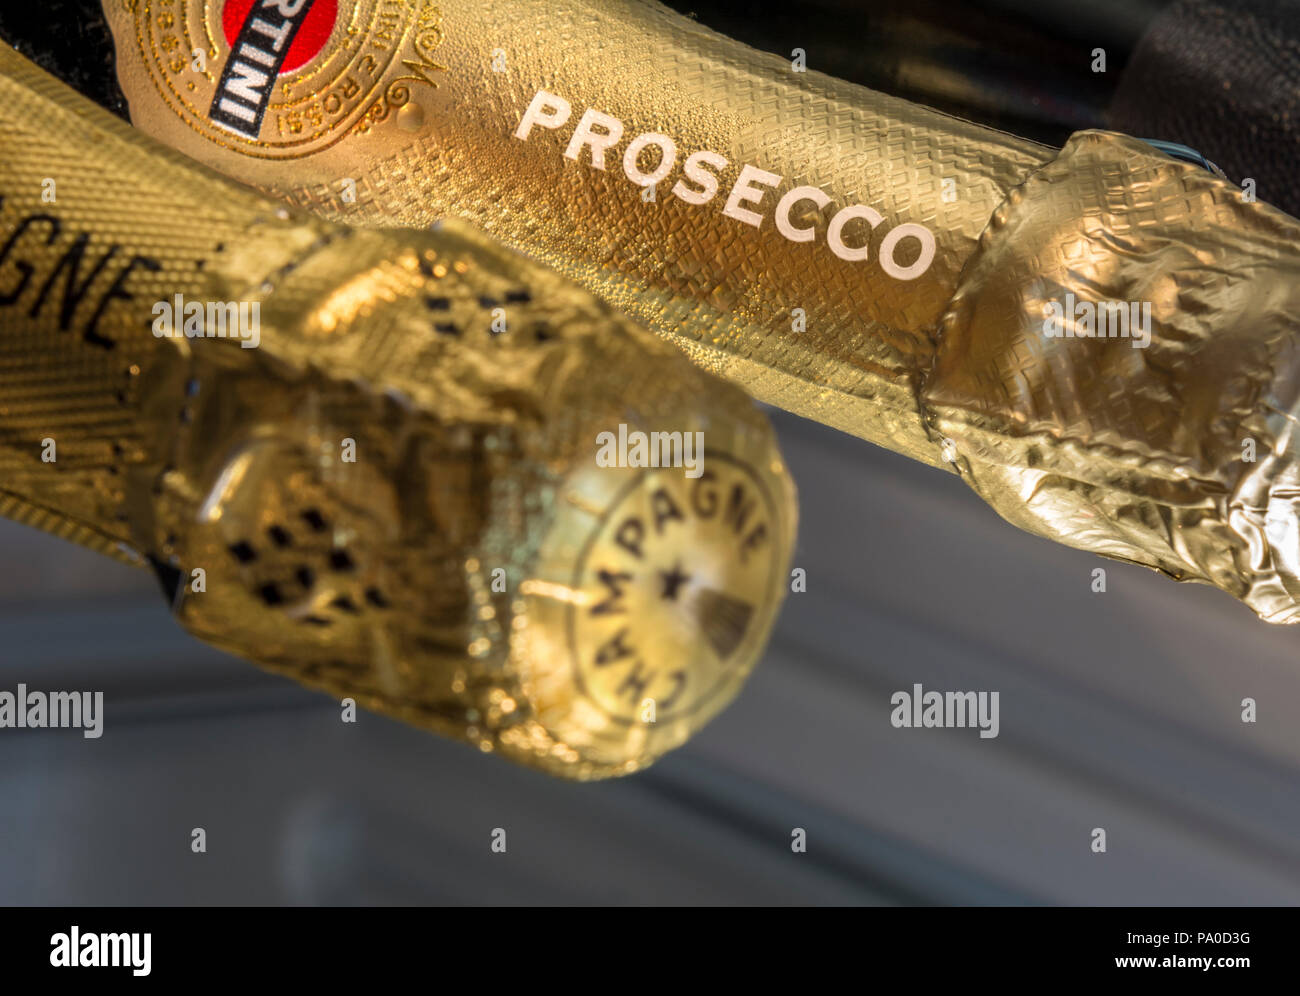 Close up on featured Prosecco name on foil neck sparkling wine bottle with Champagne bottle neck de-focused in foreground in chilled wine cabinet Stock Photo